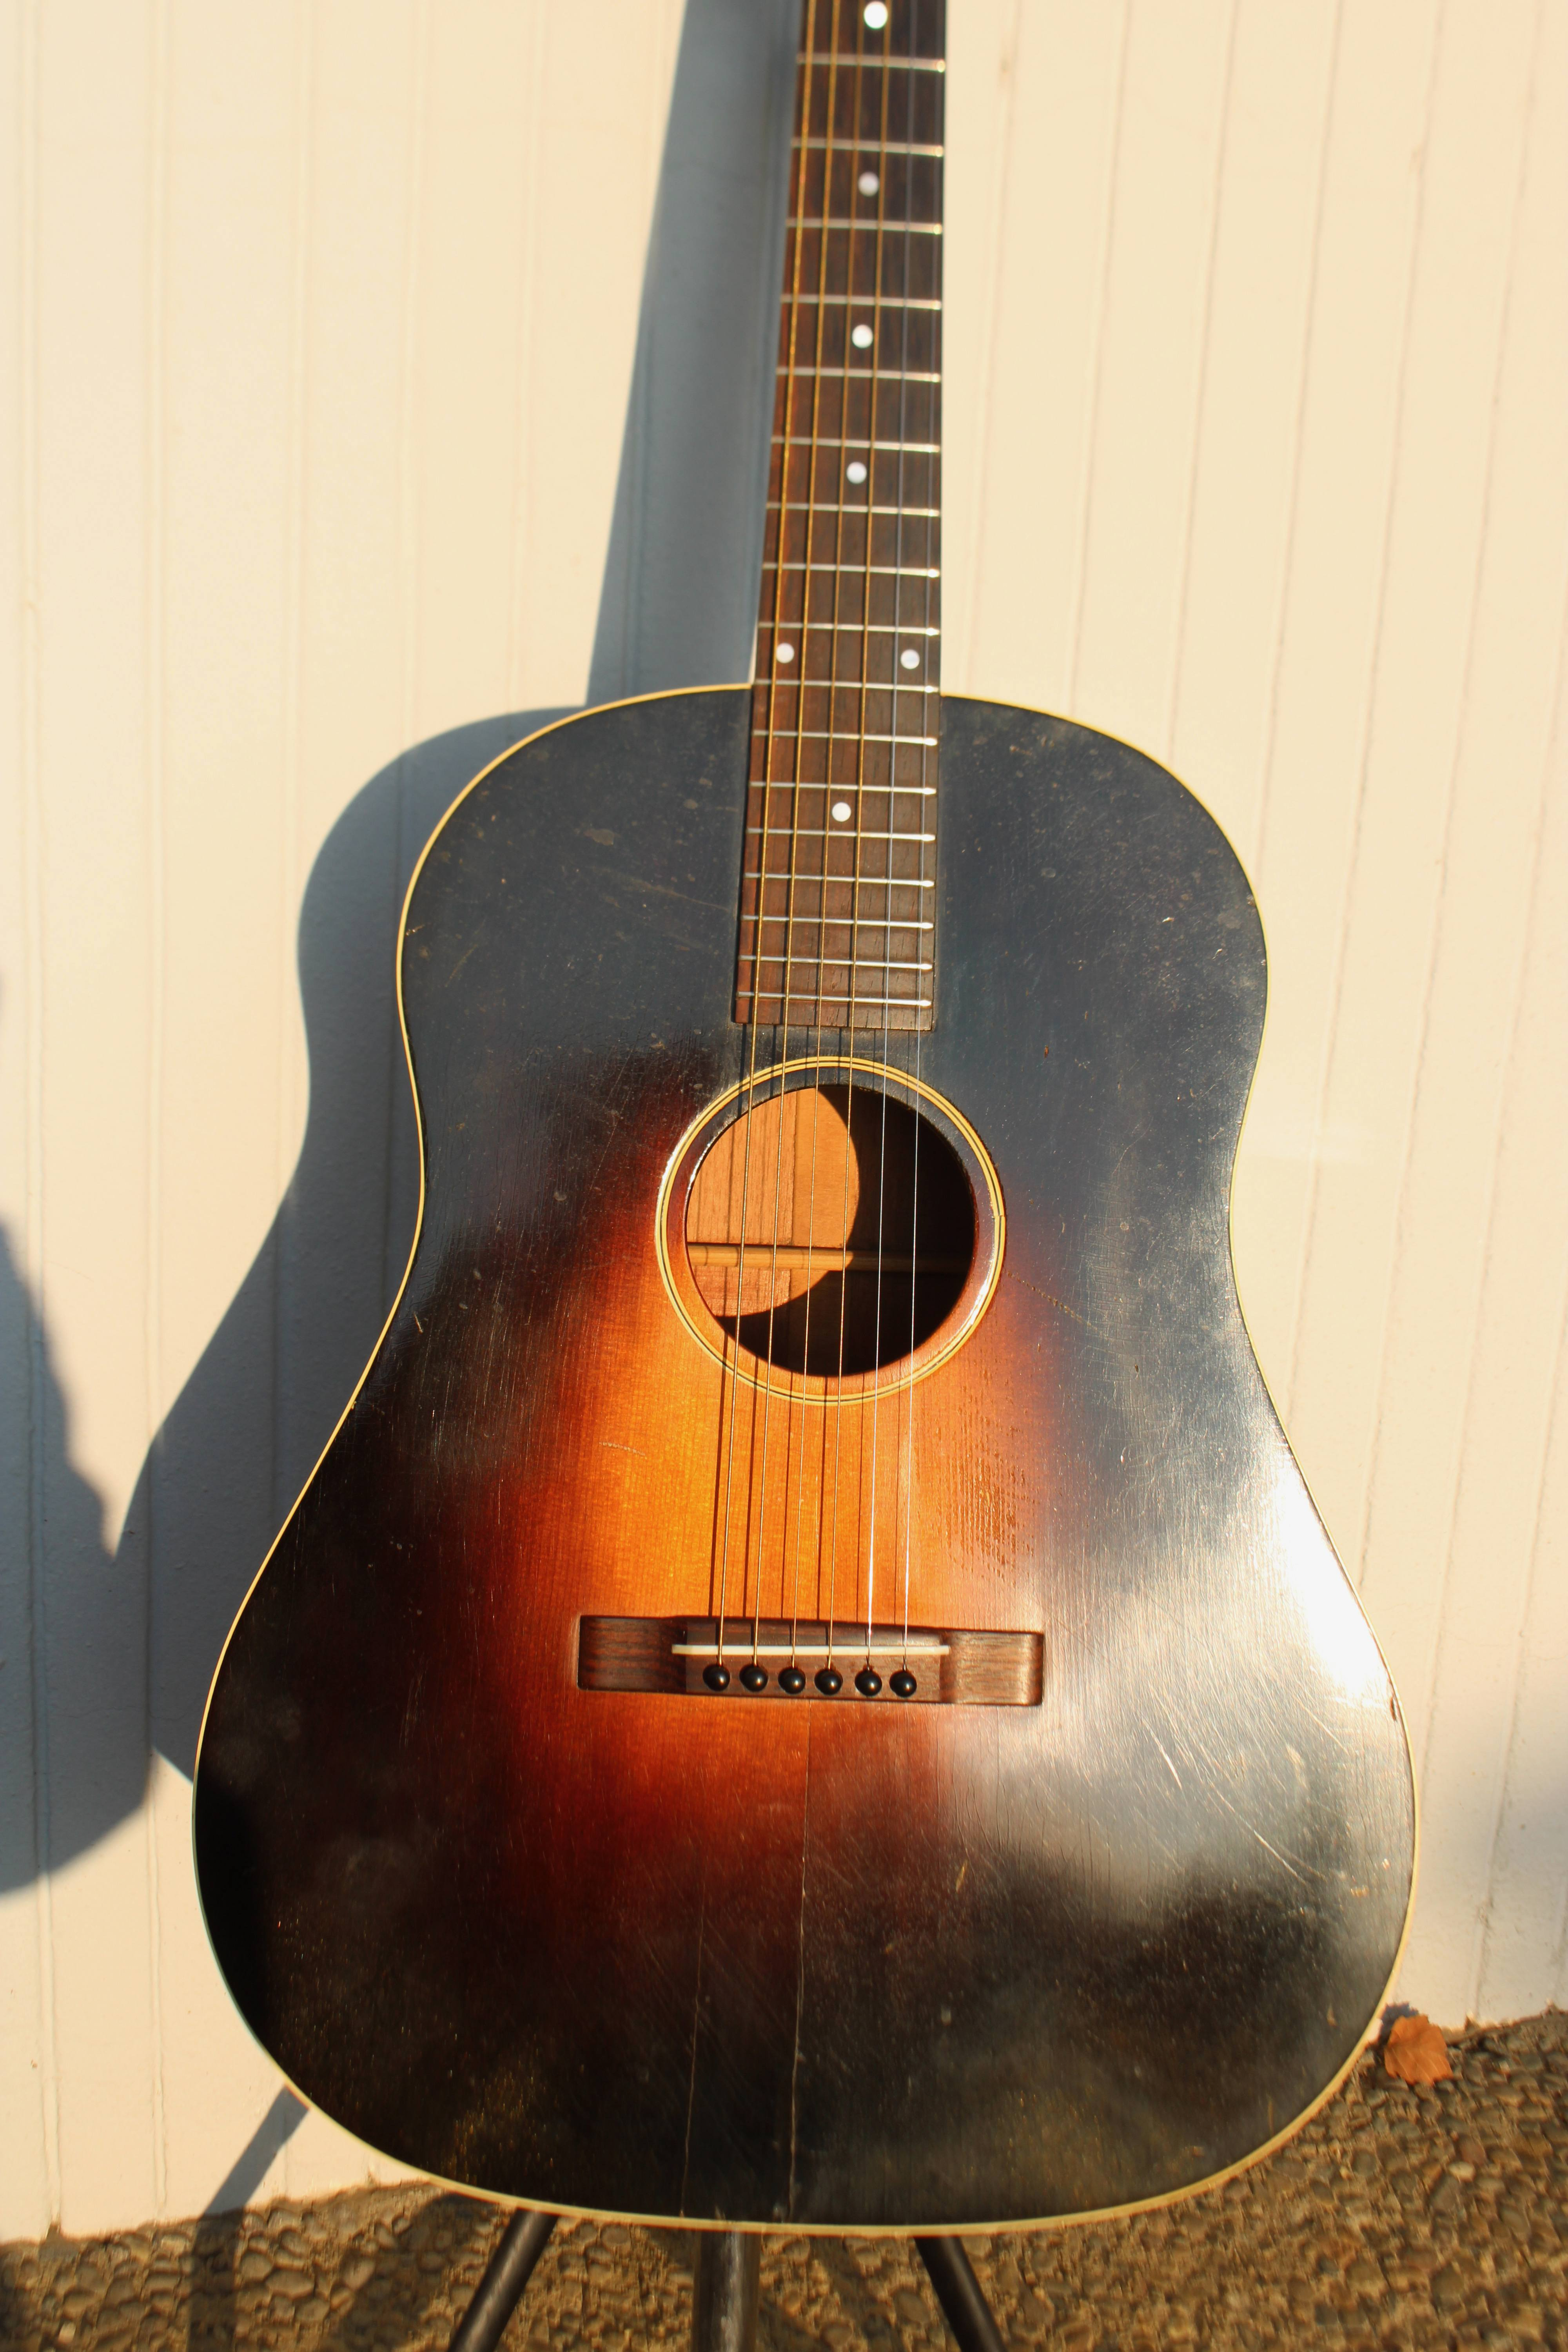 1934 Gibson Roy Smeck Stage De Luxe